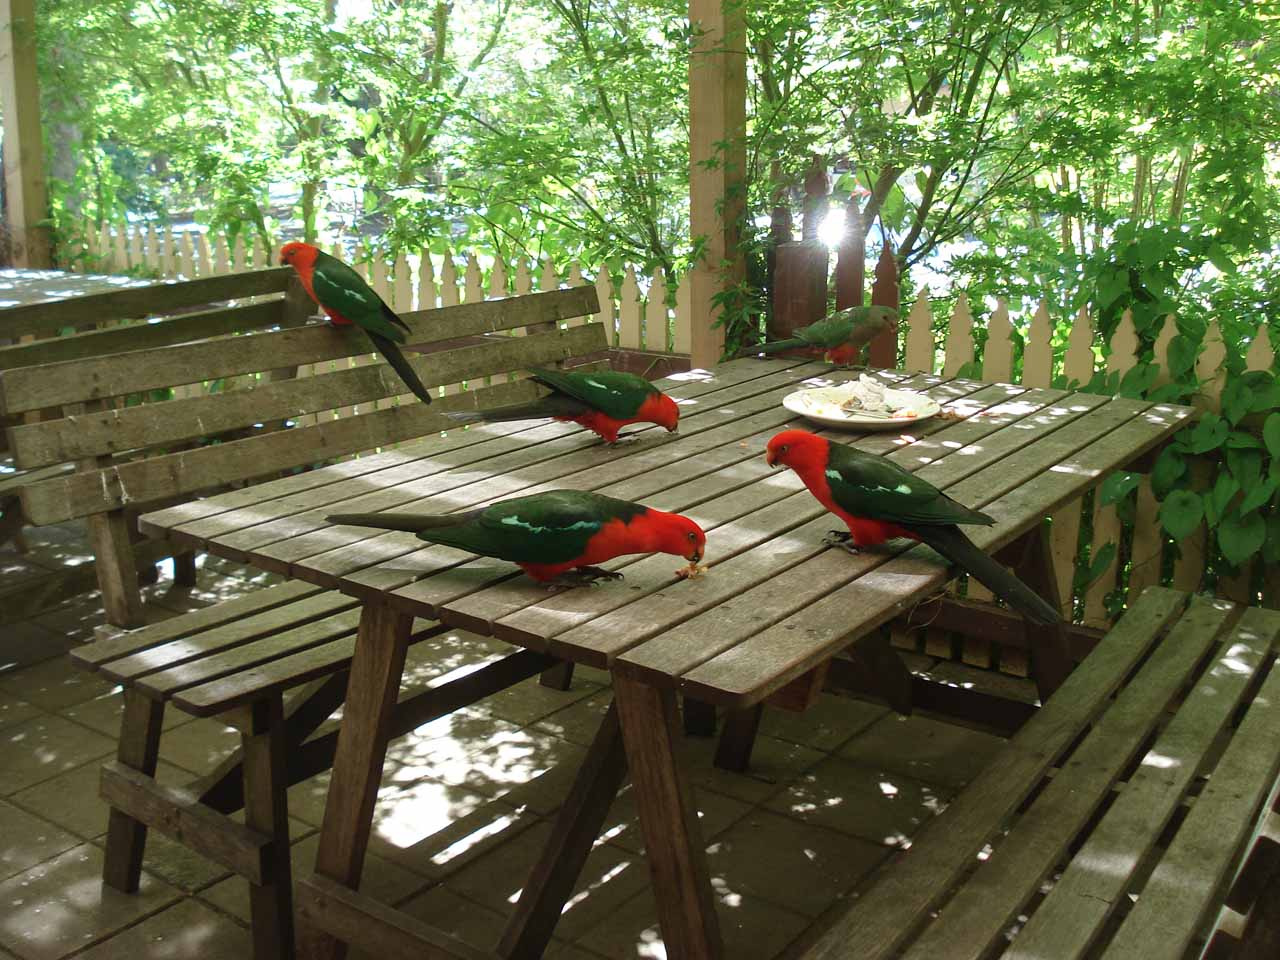 A bunch of red-headed birds pecking away at scraps at a picnic table